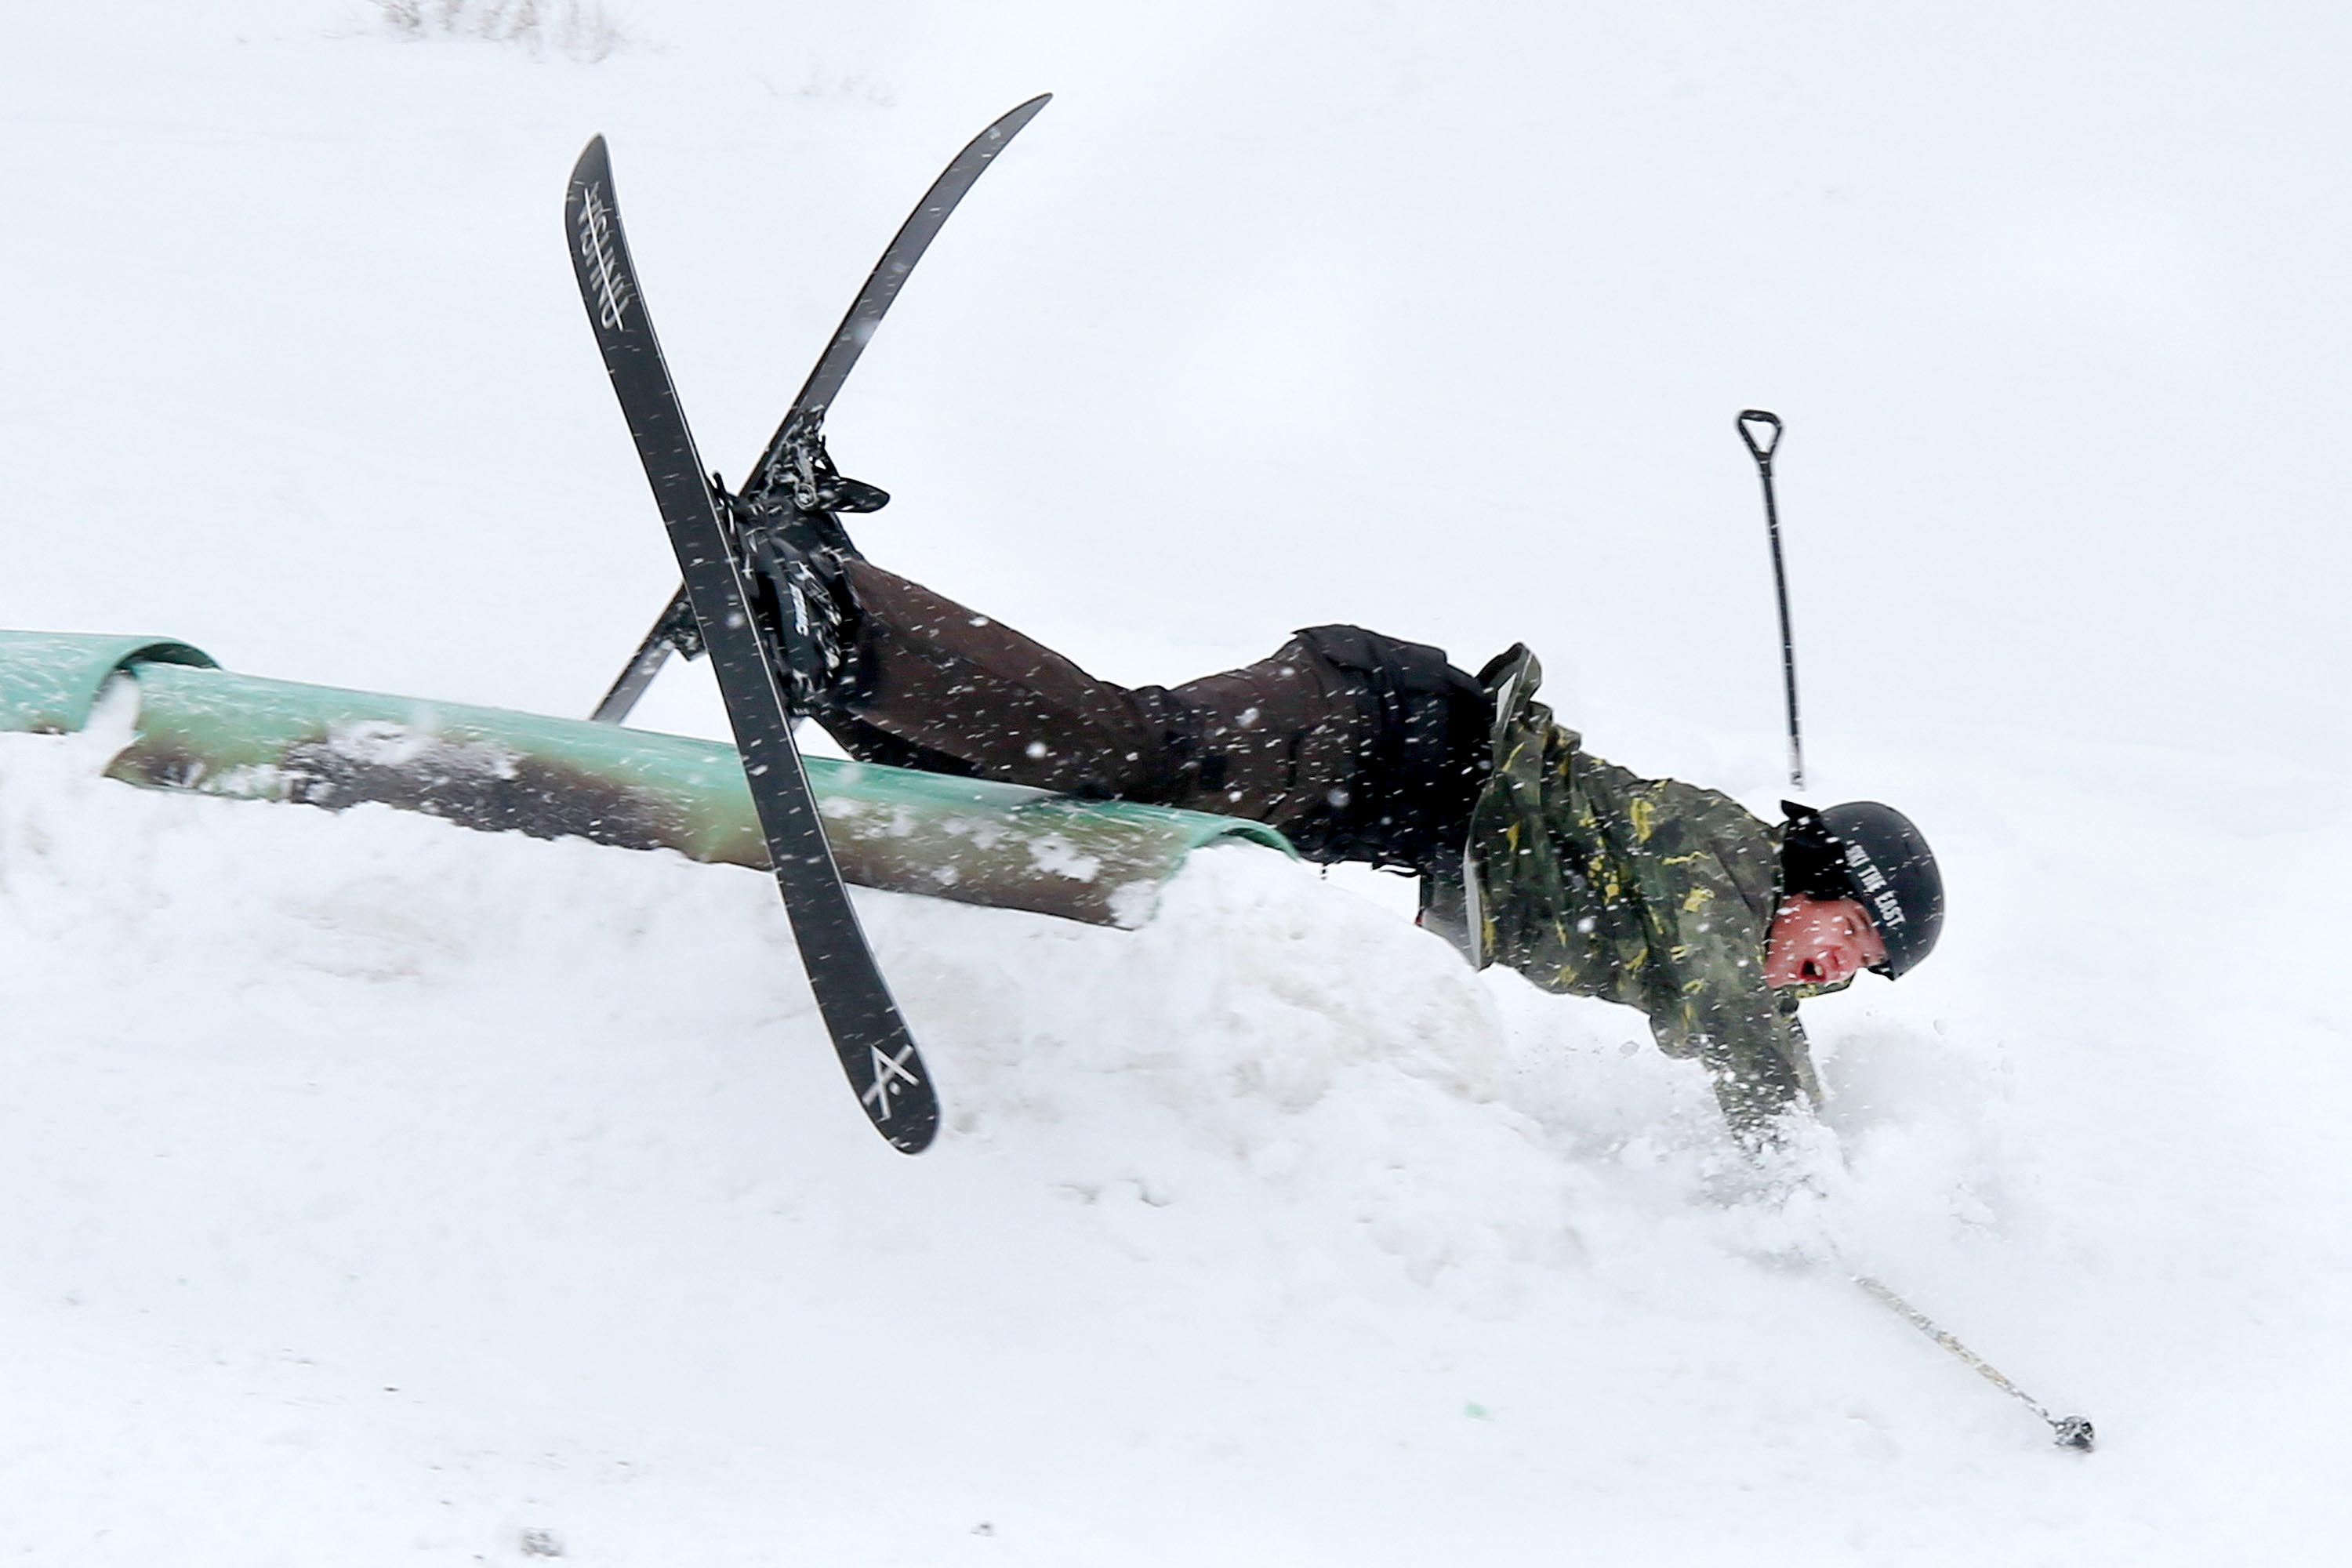 A skier slams into the ground during an airborne skill practice at Alta Ski Area in Little Cottonwood Canyon on Nov. 9, 2020.